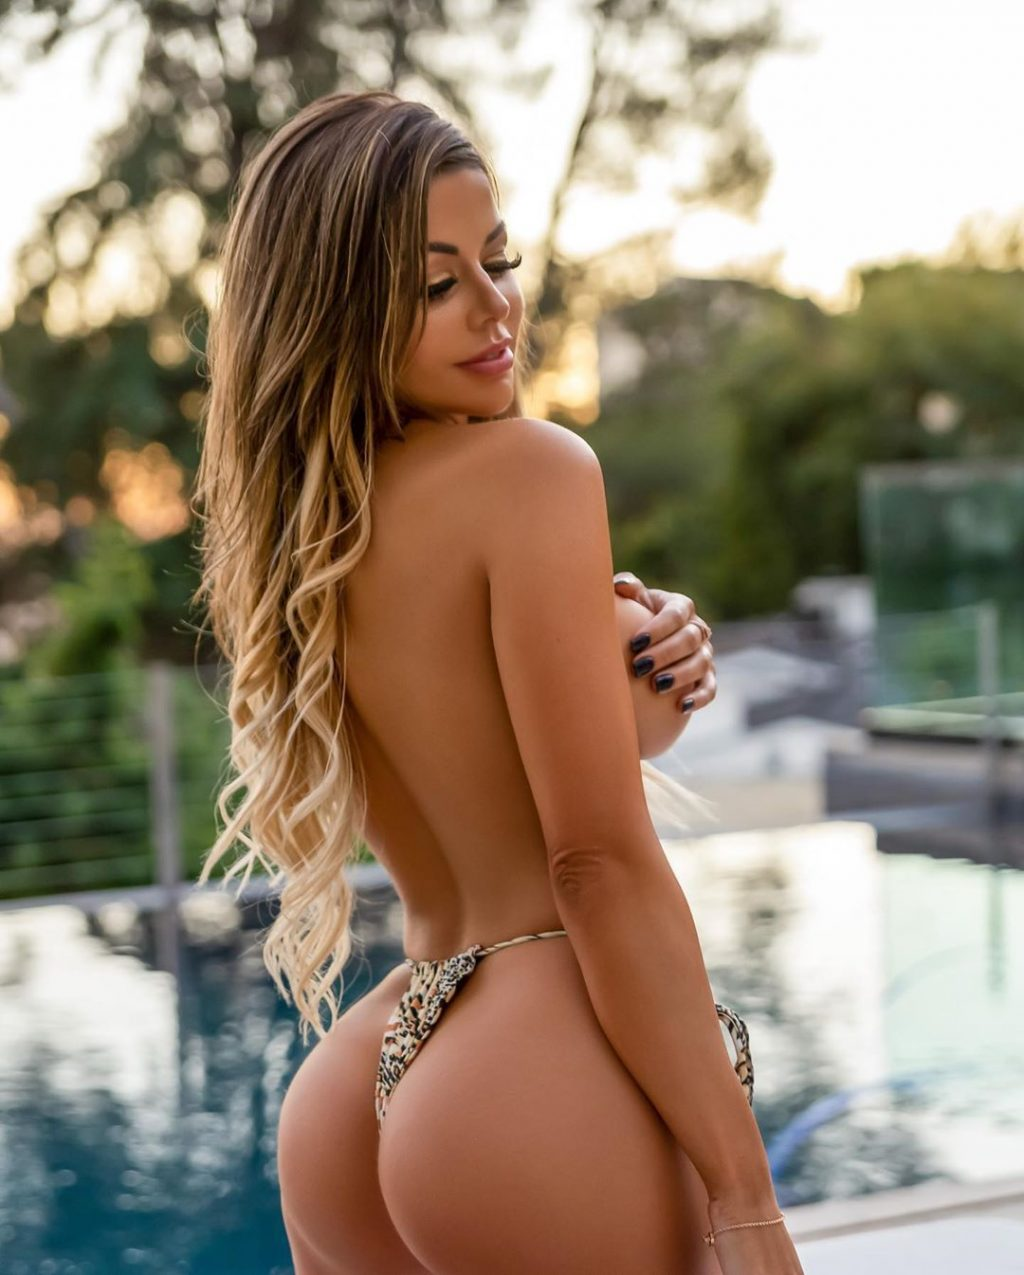 Juli Annee Nude & Sexy (74 Photos)